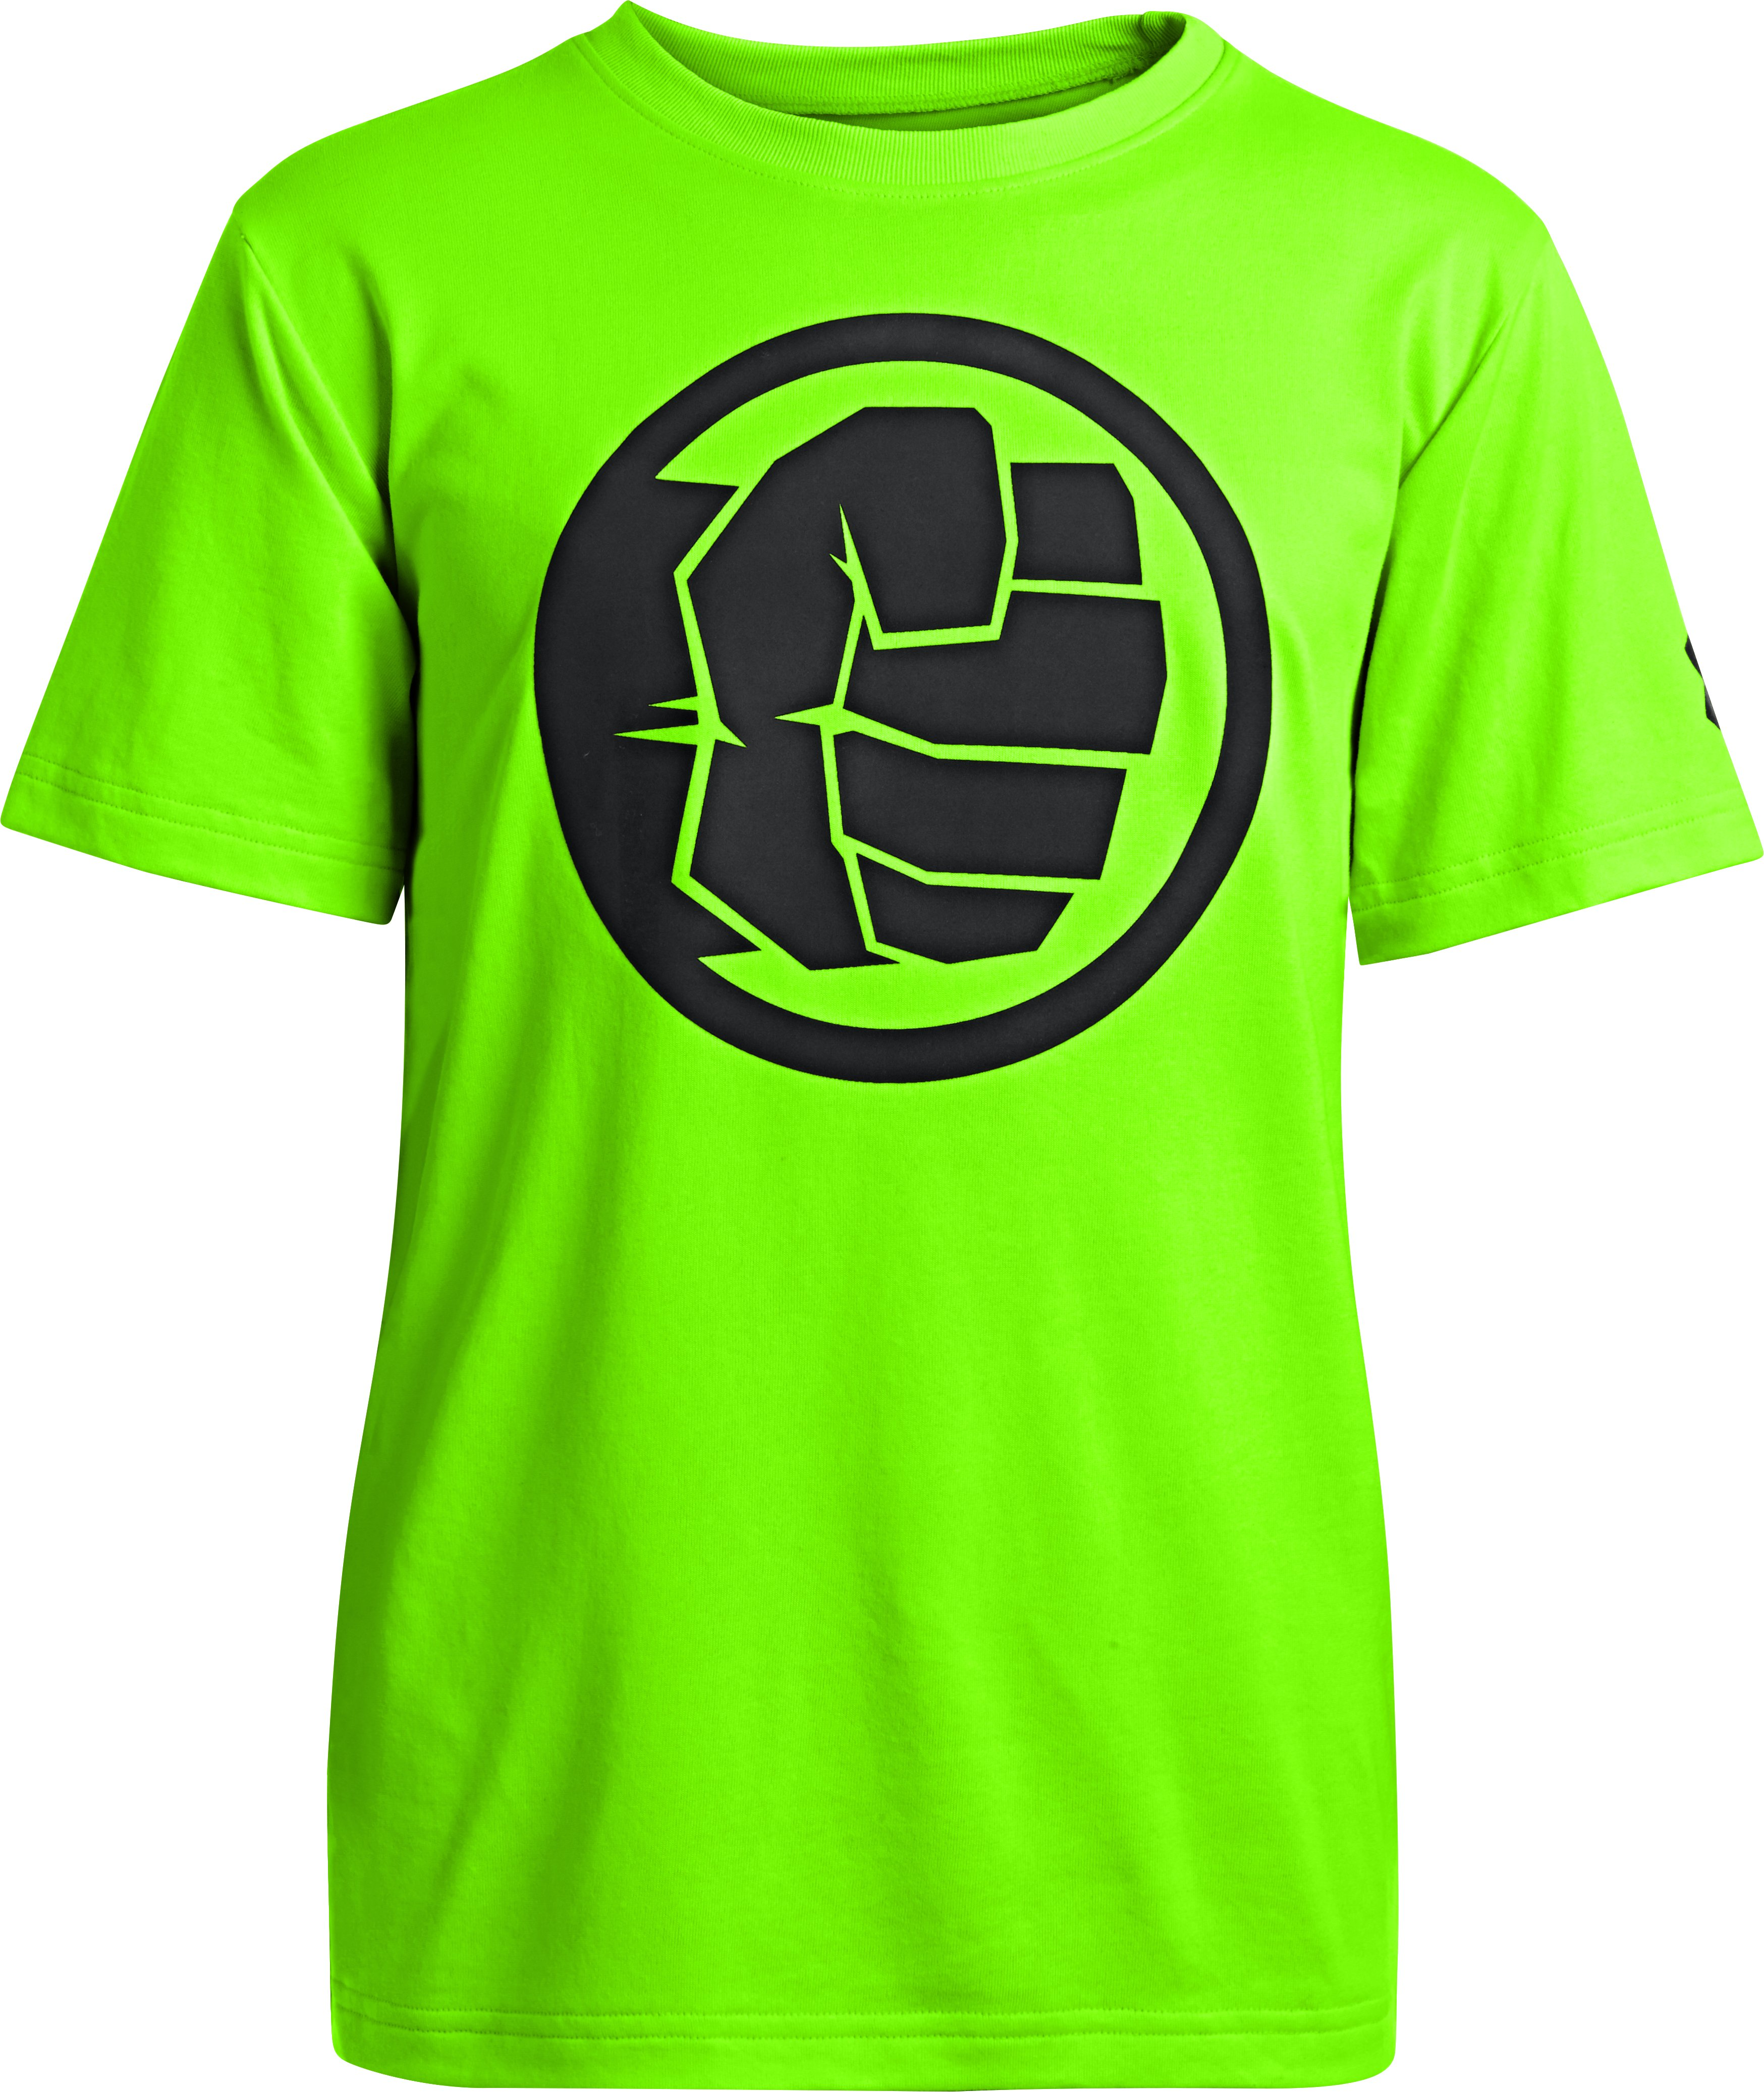 Boys' Under Armour® Alter Ego Hulk Neon T-Shirt, HYPER GREEN, zoomed image